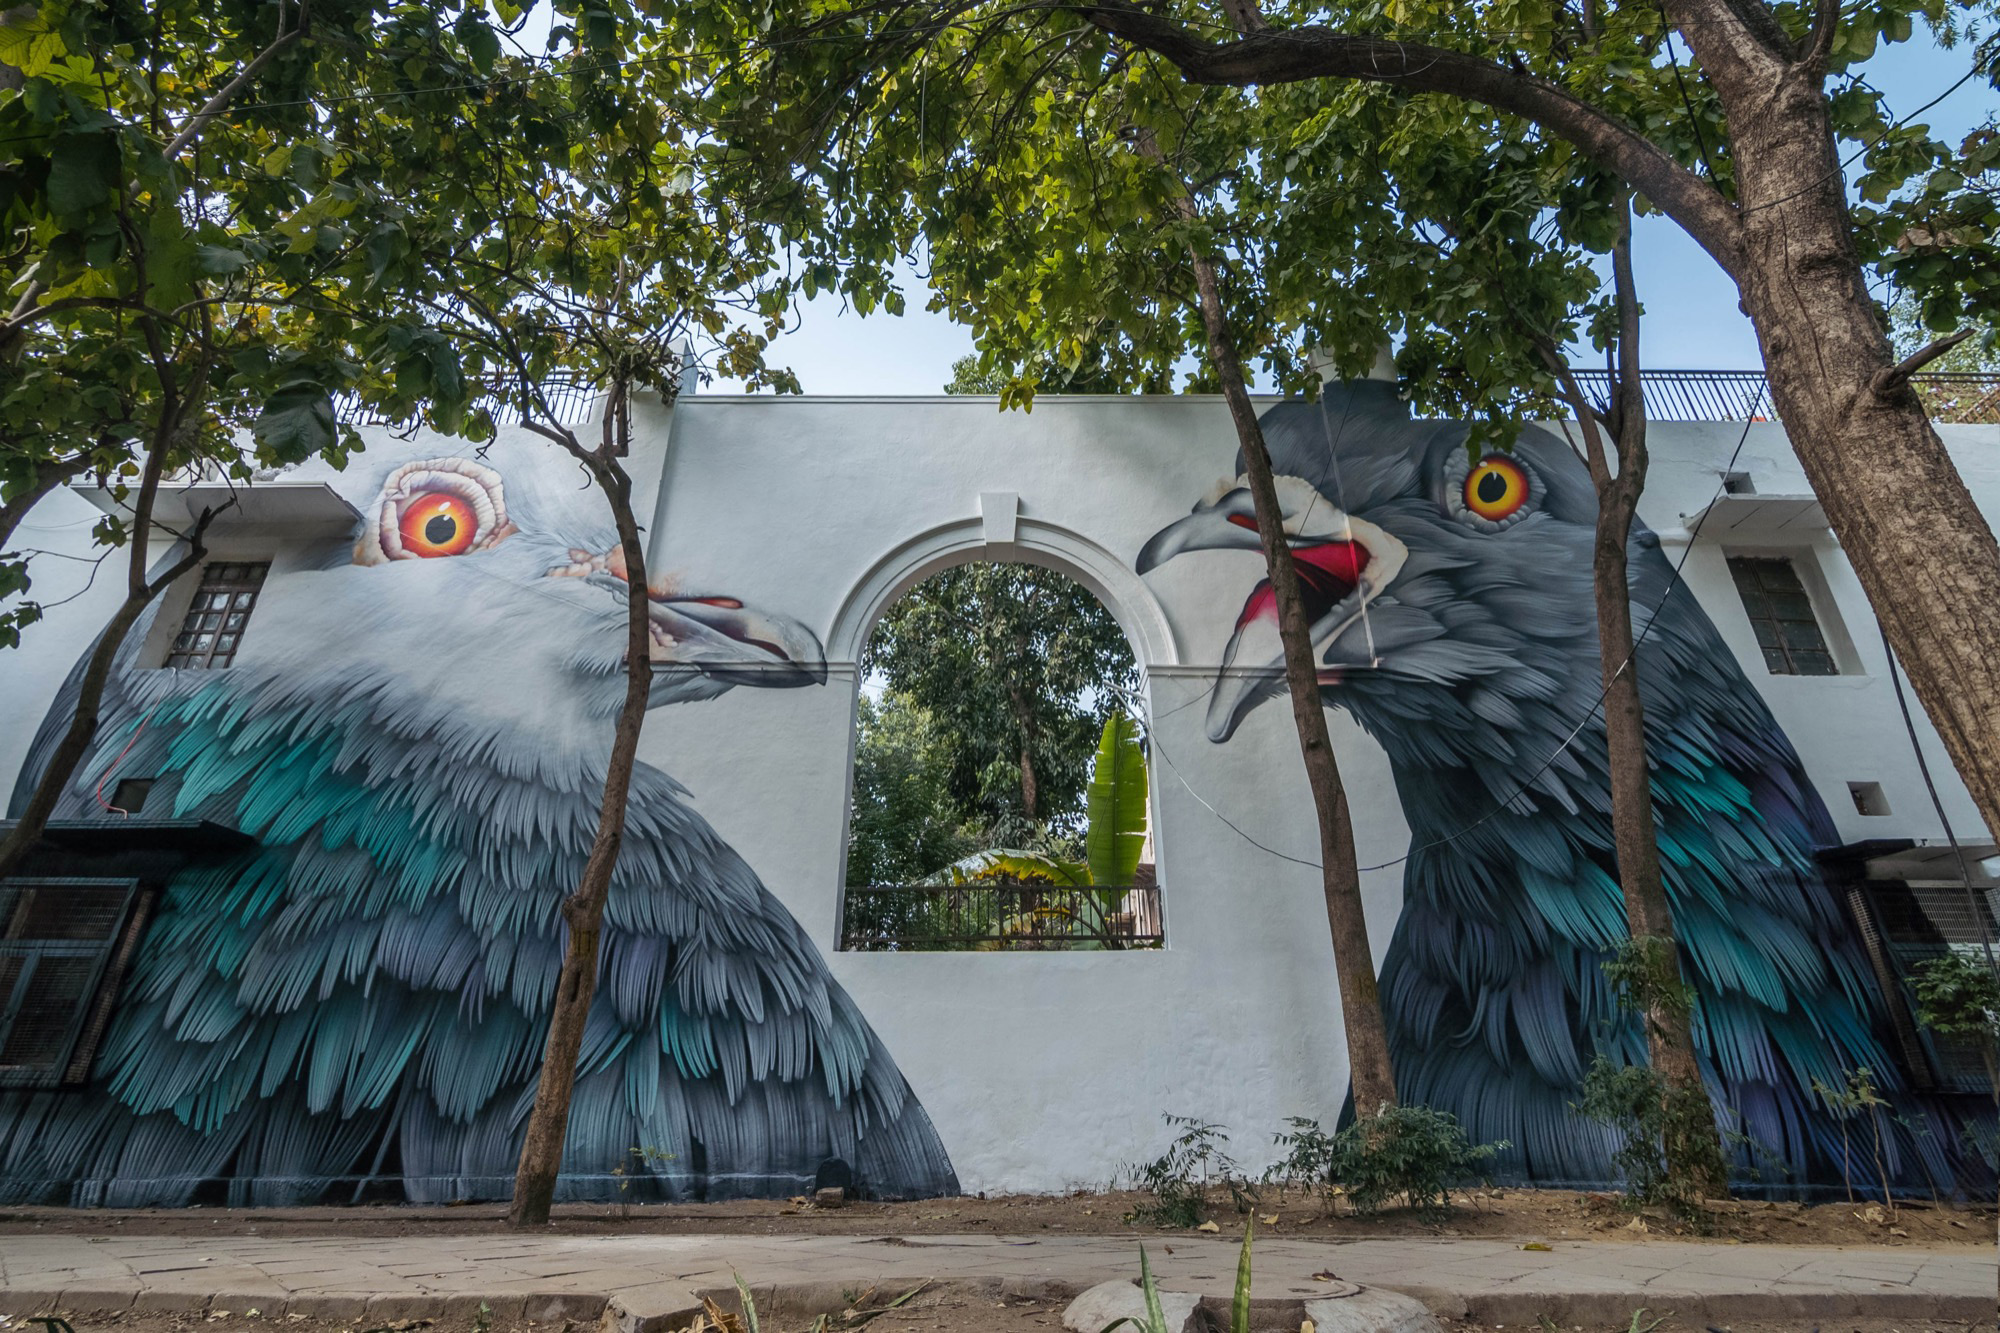 All images by Pranav Gohil, via Street Art News